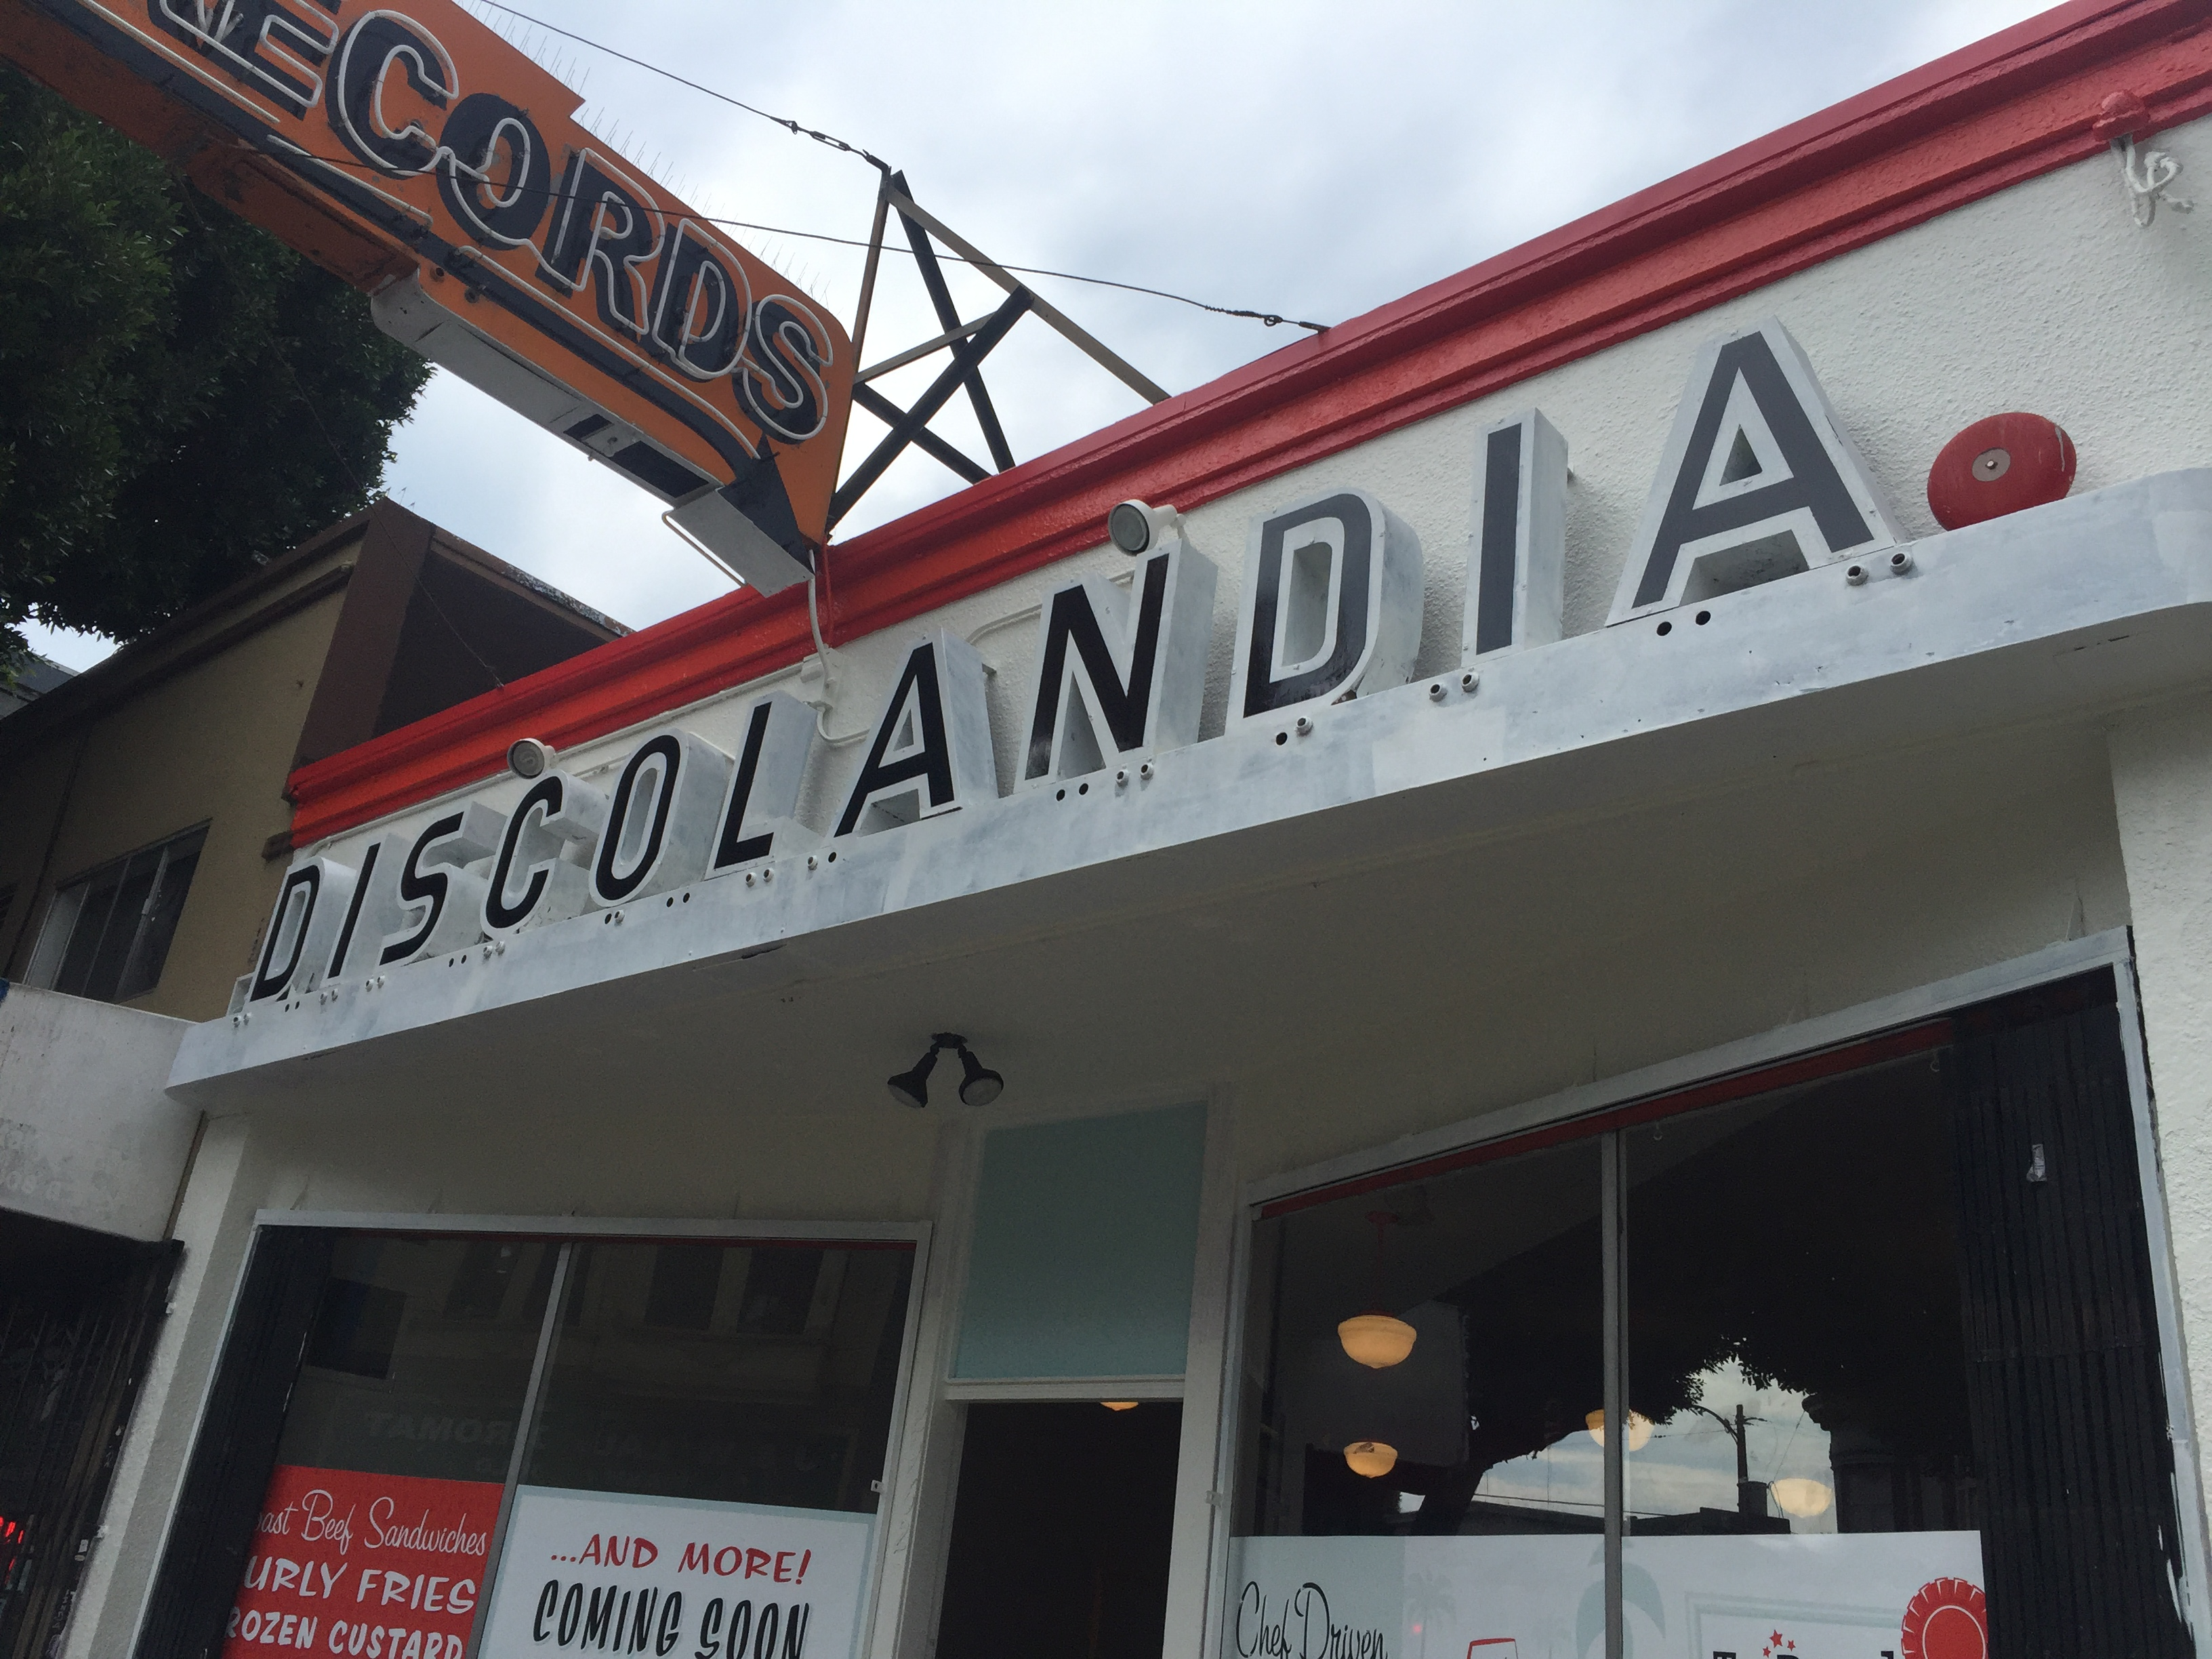 The Discolandia sign is here to stay